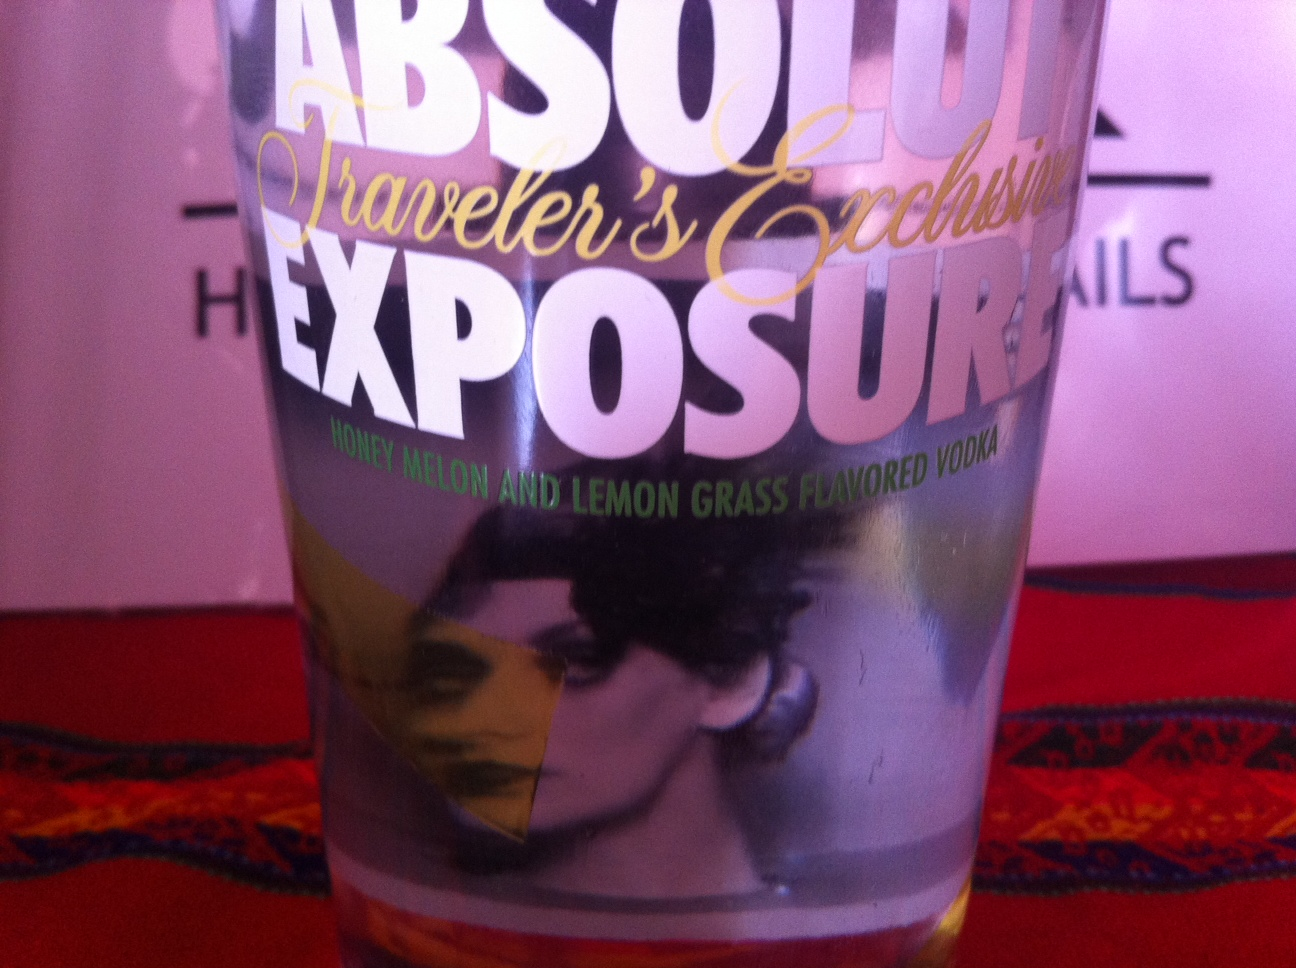 Vodka - Absolut Exposure #2